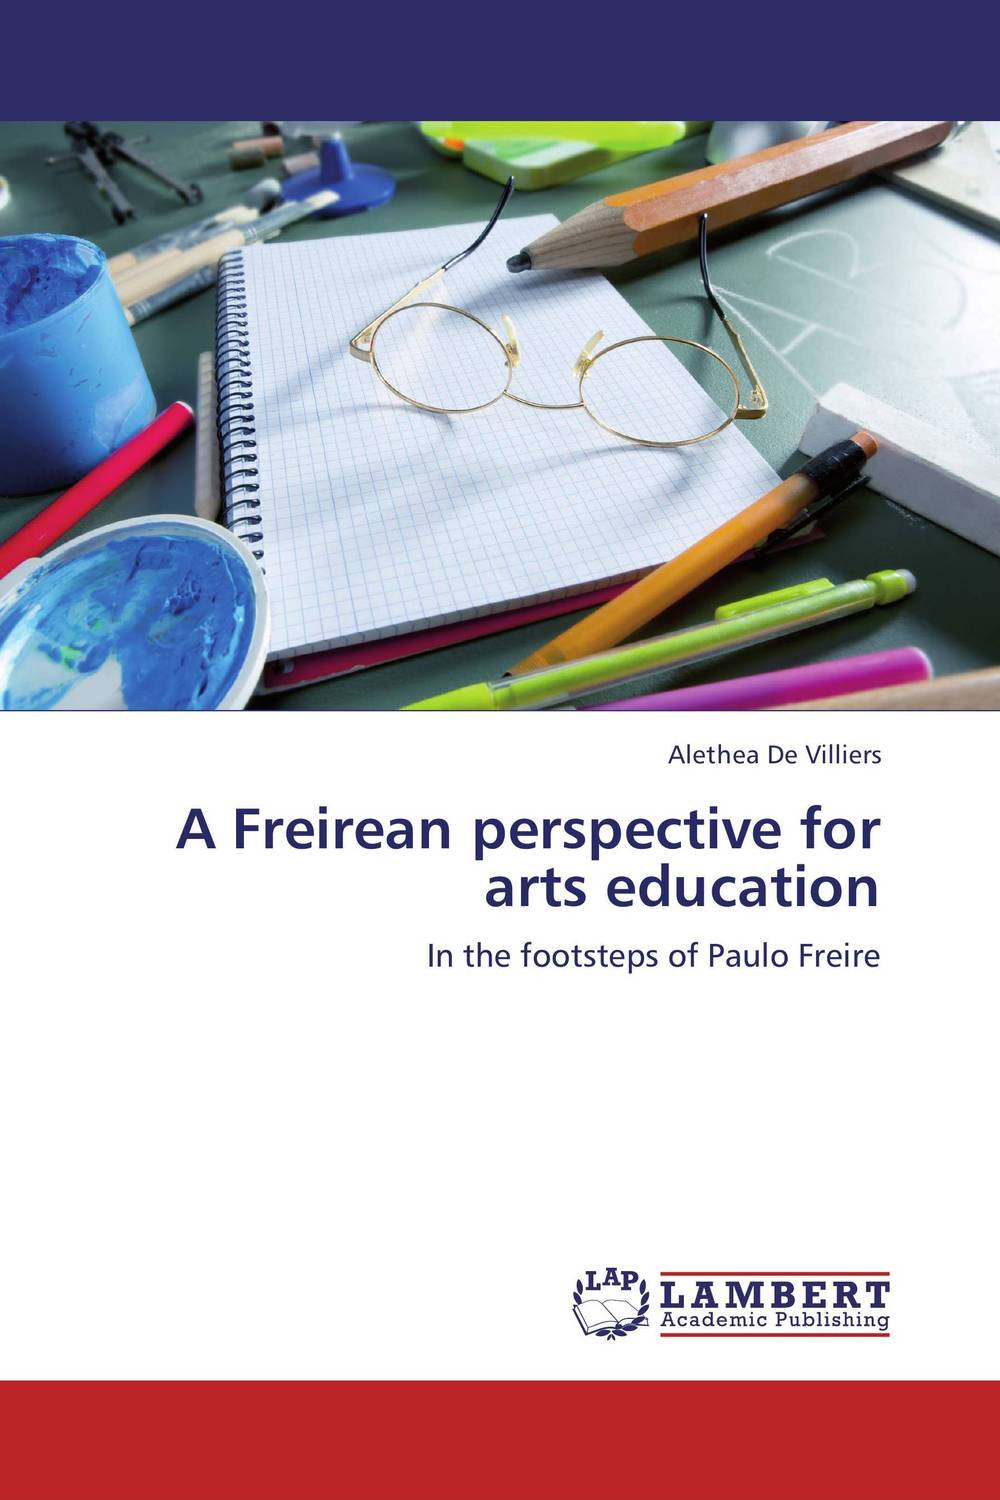 A Freirean perspective for arts education